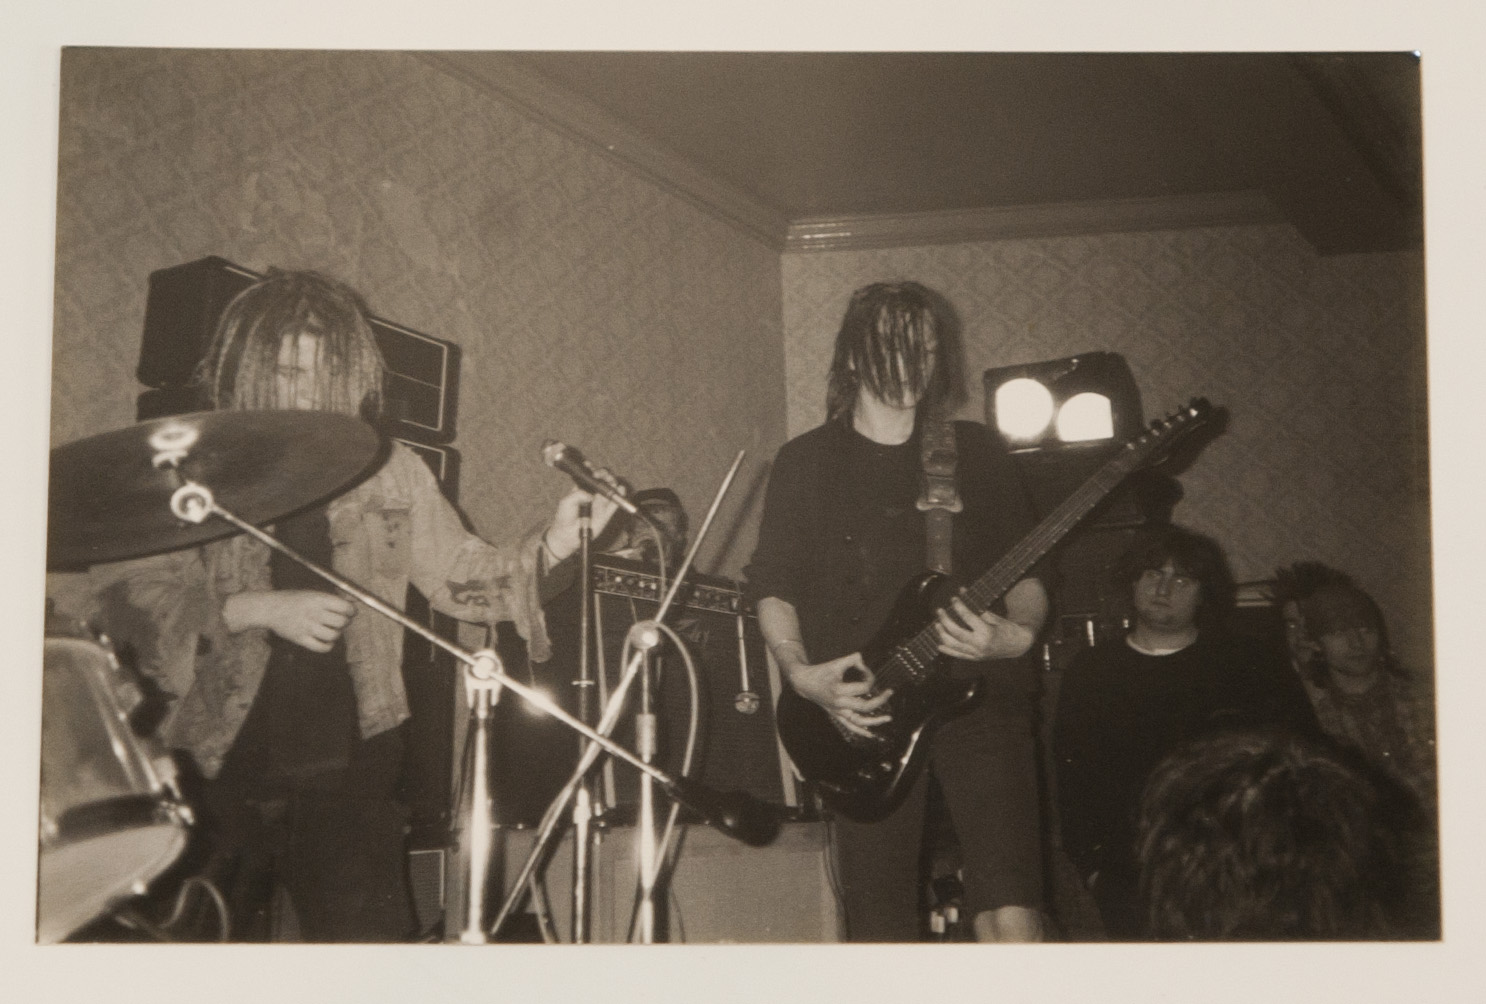 Home of Metal | Napalm Death photographs (1986).